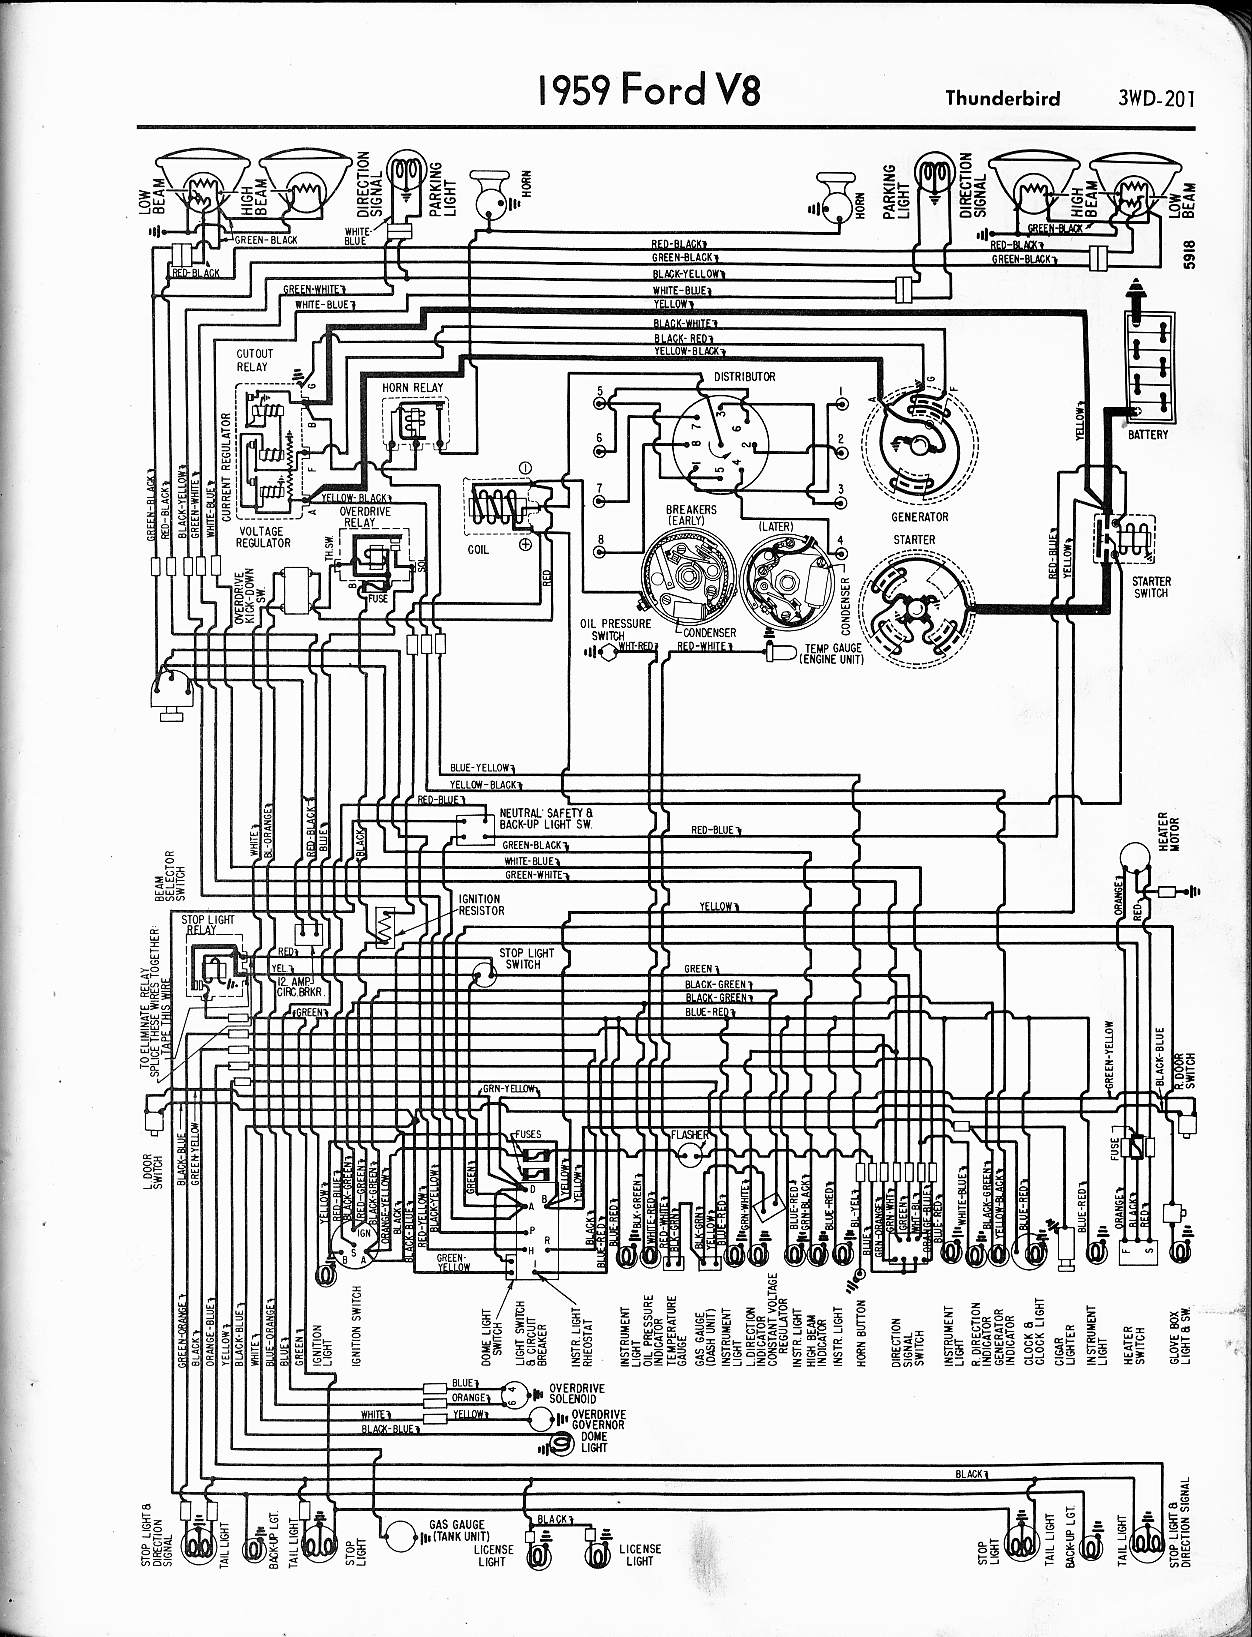 1958 Ford Wiring Diagram - Wiring Diagram Data  Ford Wiring Diagram on 1954 dodge wiring diagram, 1964 mustang wiring diagram, 1949 cadillac wiring diagram, 1926 ford wiring diagram, 1940 buick wiring diagram, 1967 ford wiring diagram, 1937 ford wiring diagram, 1957 pontiac wiring diagram, 1958 ford continental kit, 1957 plymouth wiring diagram, 1957 dodge wiring diagram, 59 ford wiring diagram, 1930 ford wiring diagram, 1953 buick wiring diagram, 1950 ford wiring diagram, 1931 ford model a wiring diagram, 1955 dodge wiring diagram, 1955 buick wiring diagram, 1963 ford wiring diagram, 1950 cadillac wiring diagram,